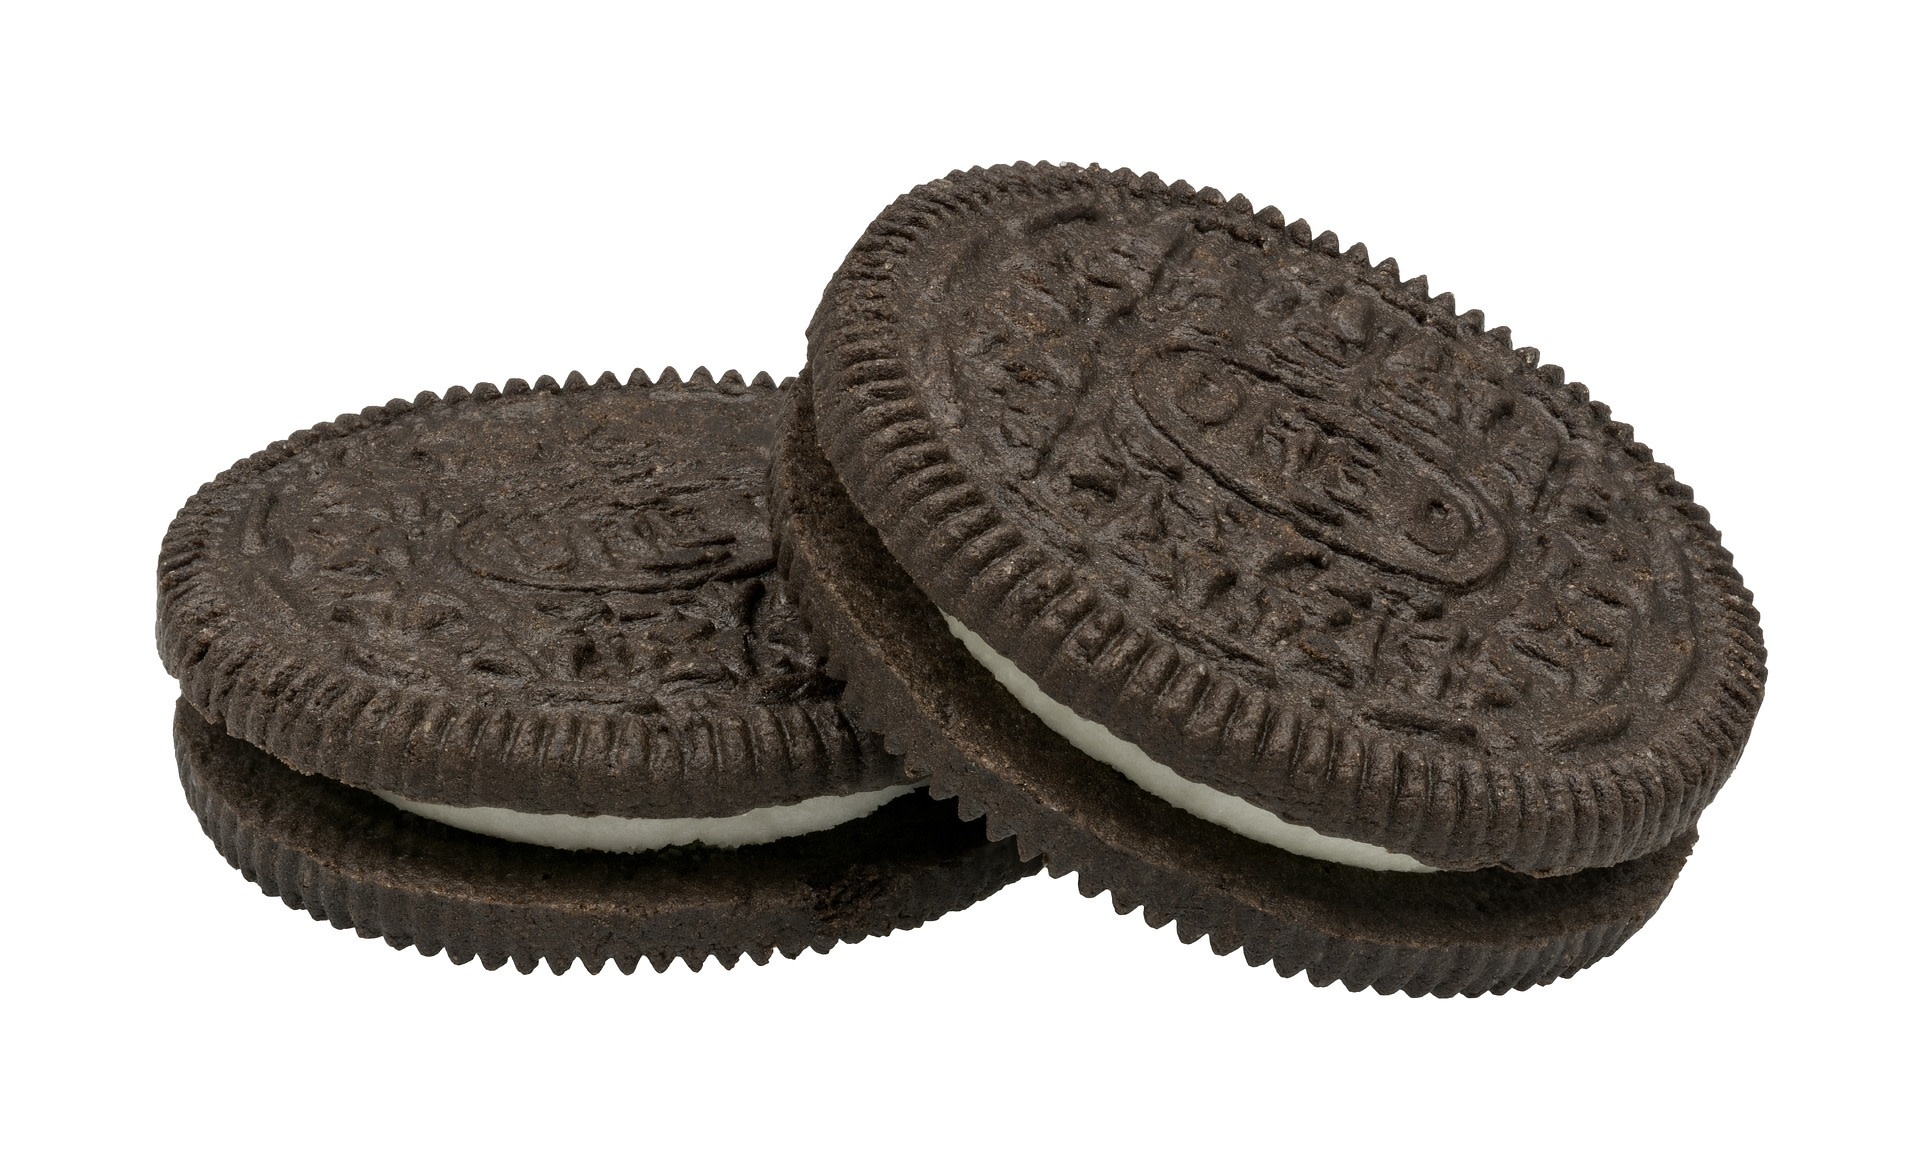 What is the Status of Oreo Sandwich Cookies